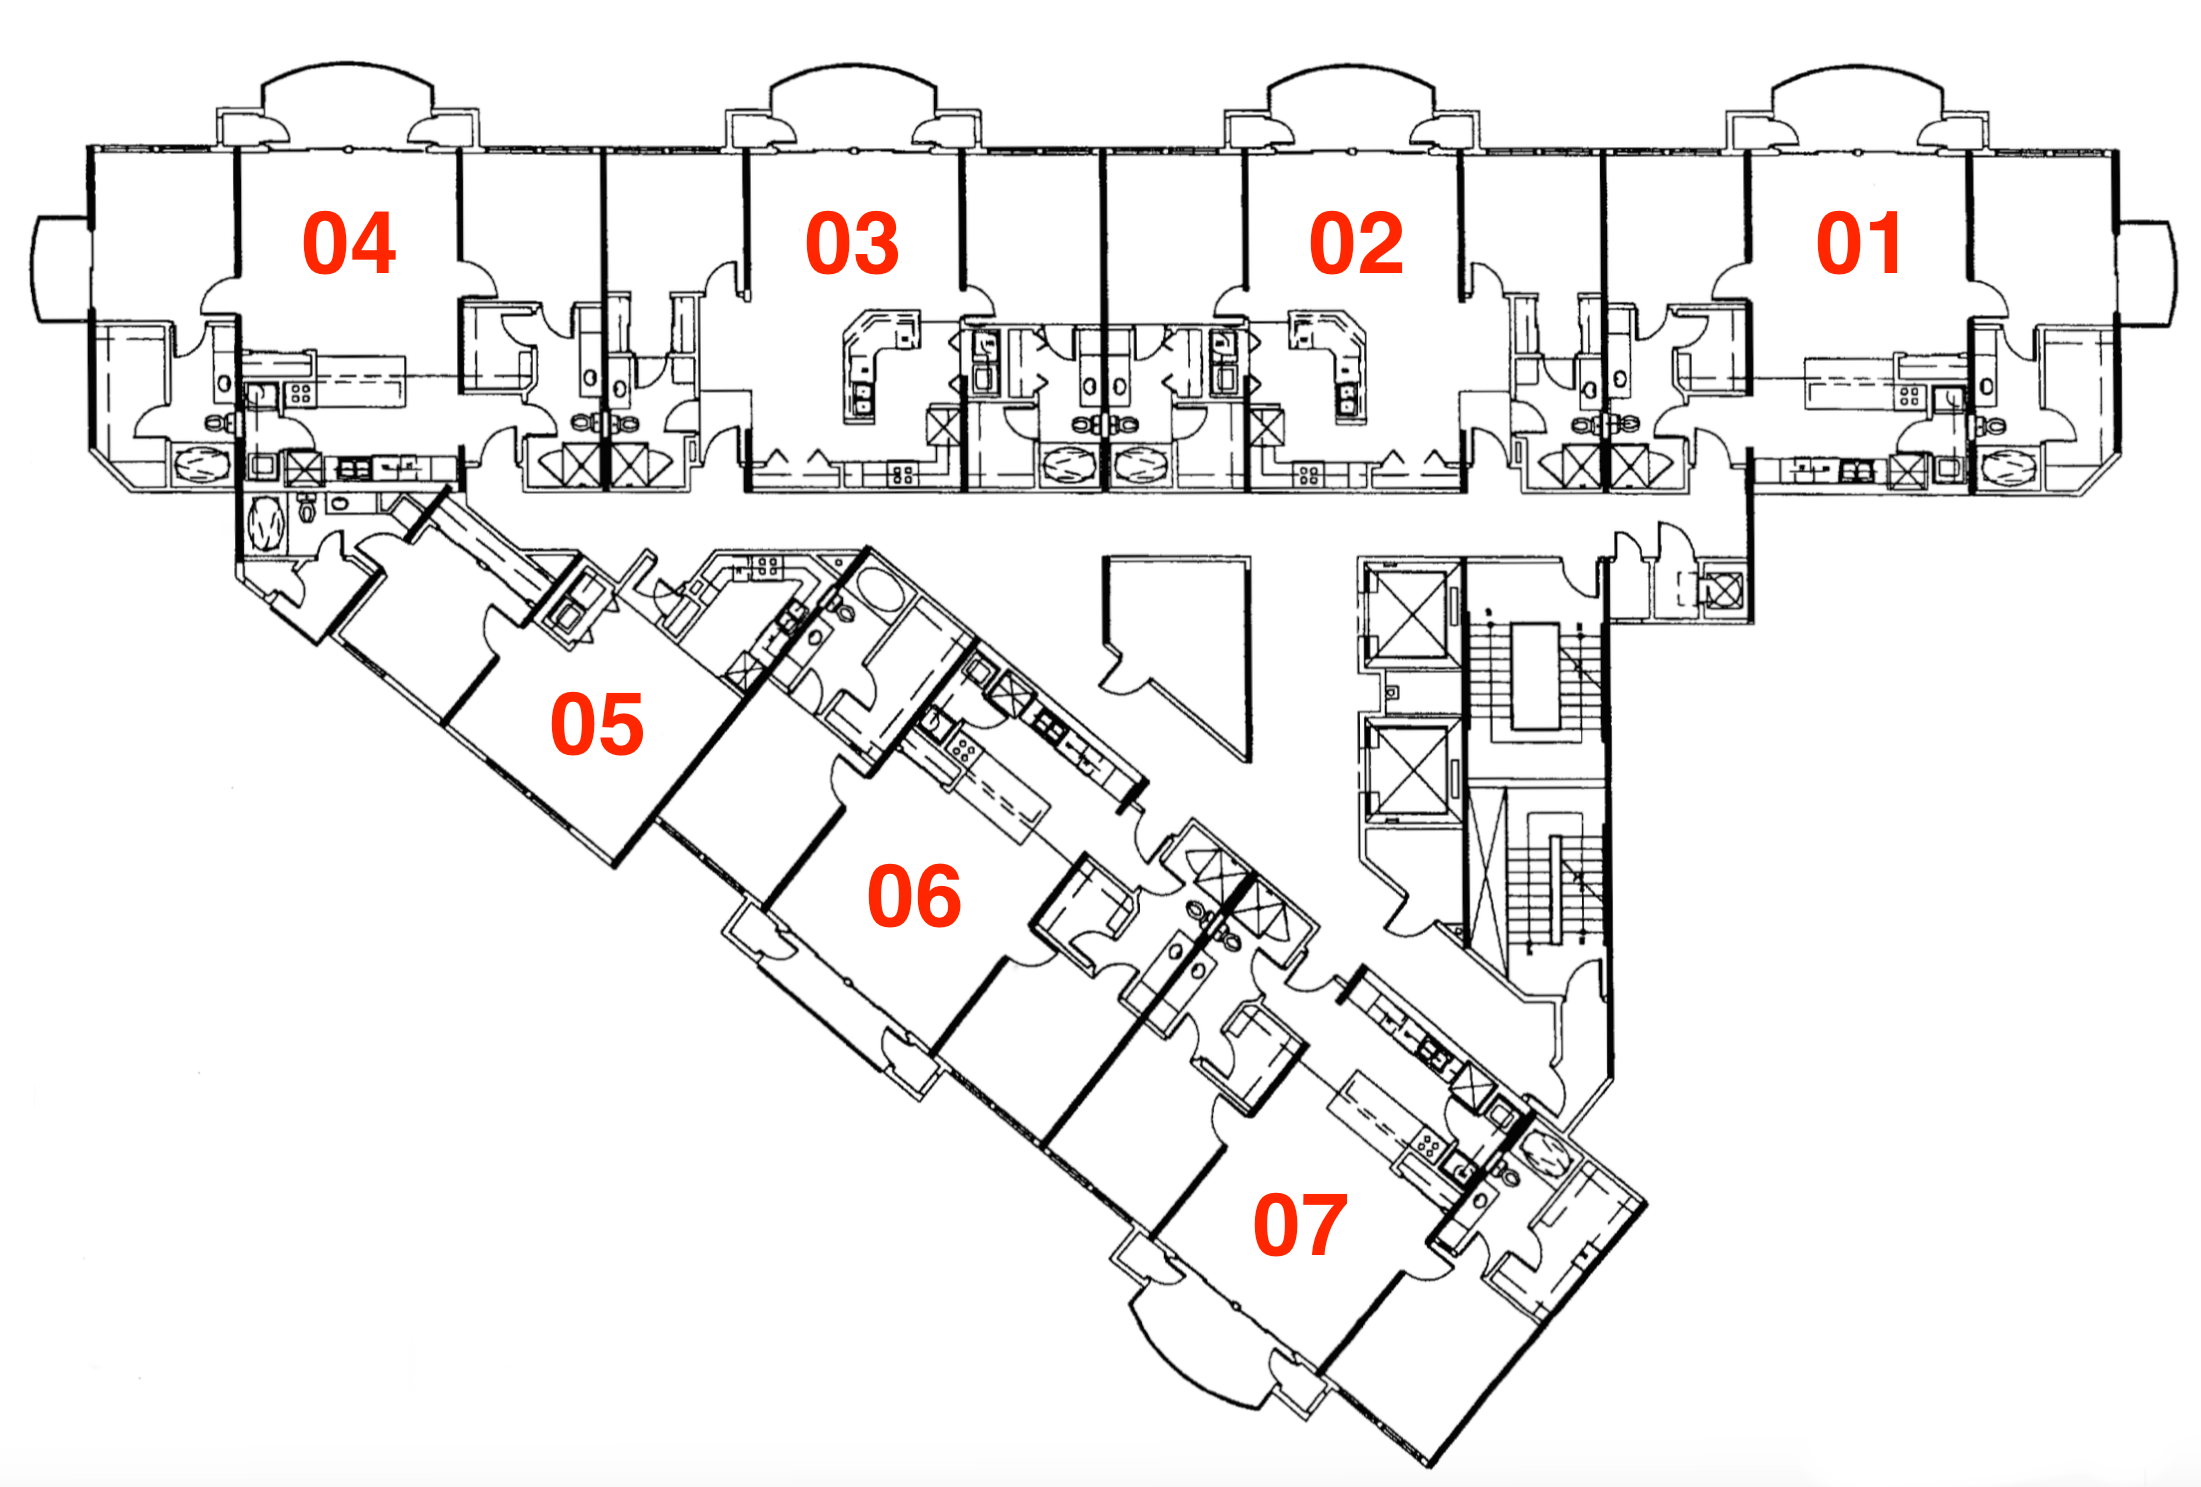 East Tower Typical Layout